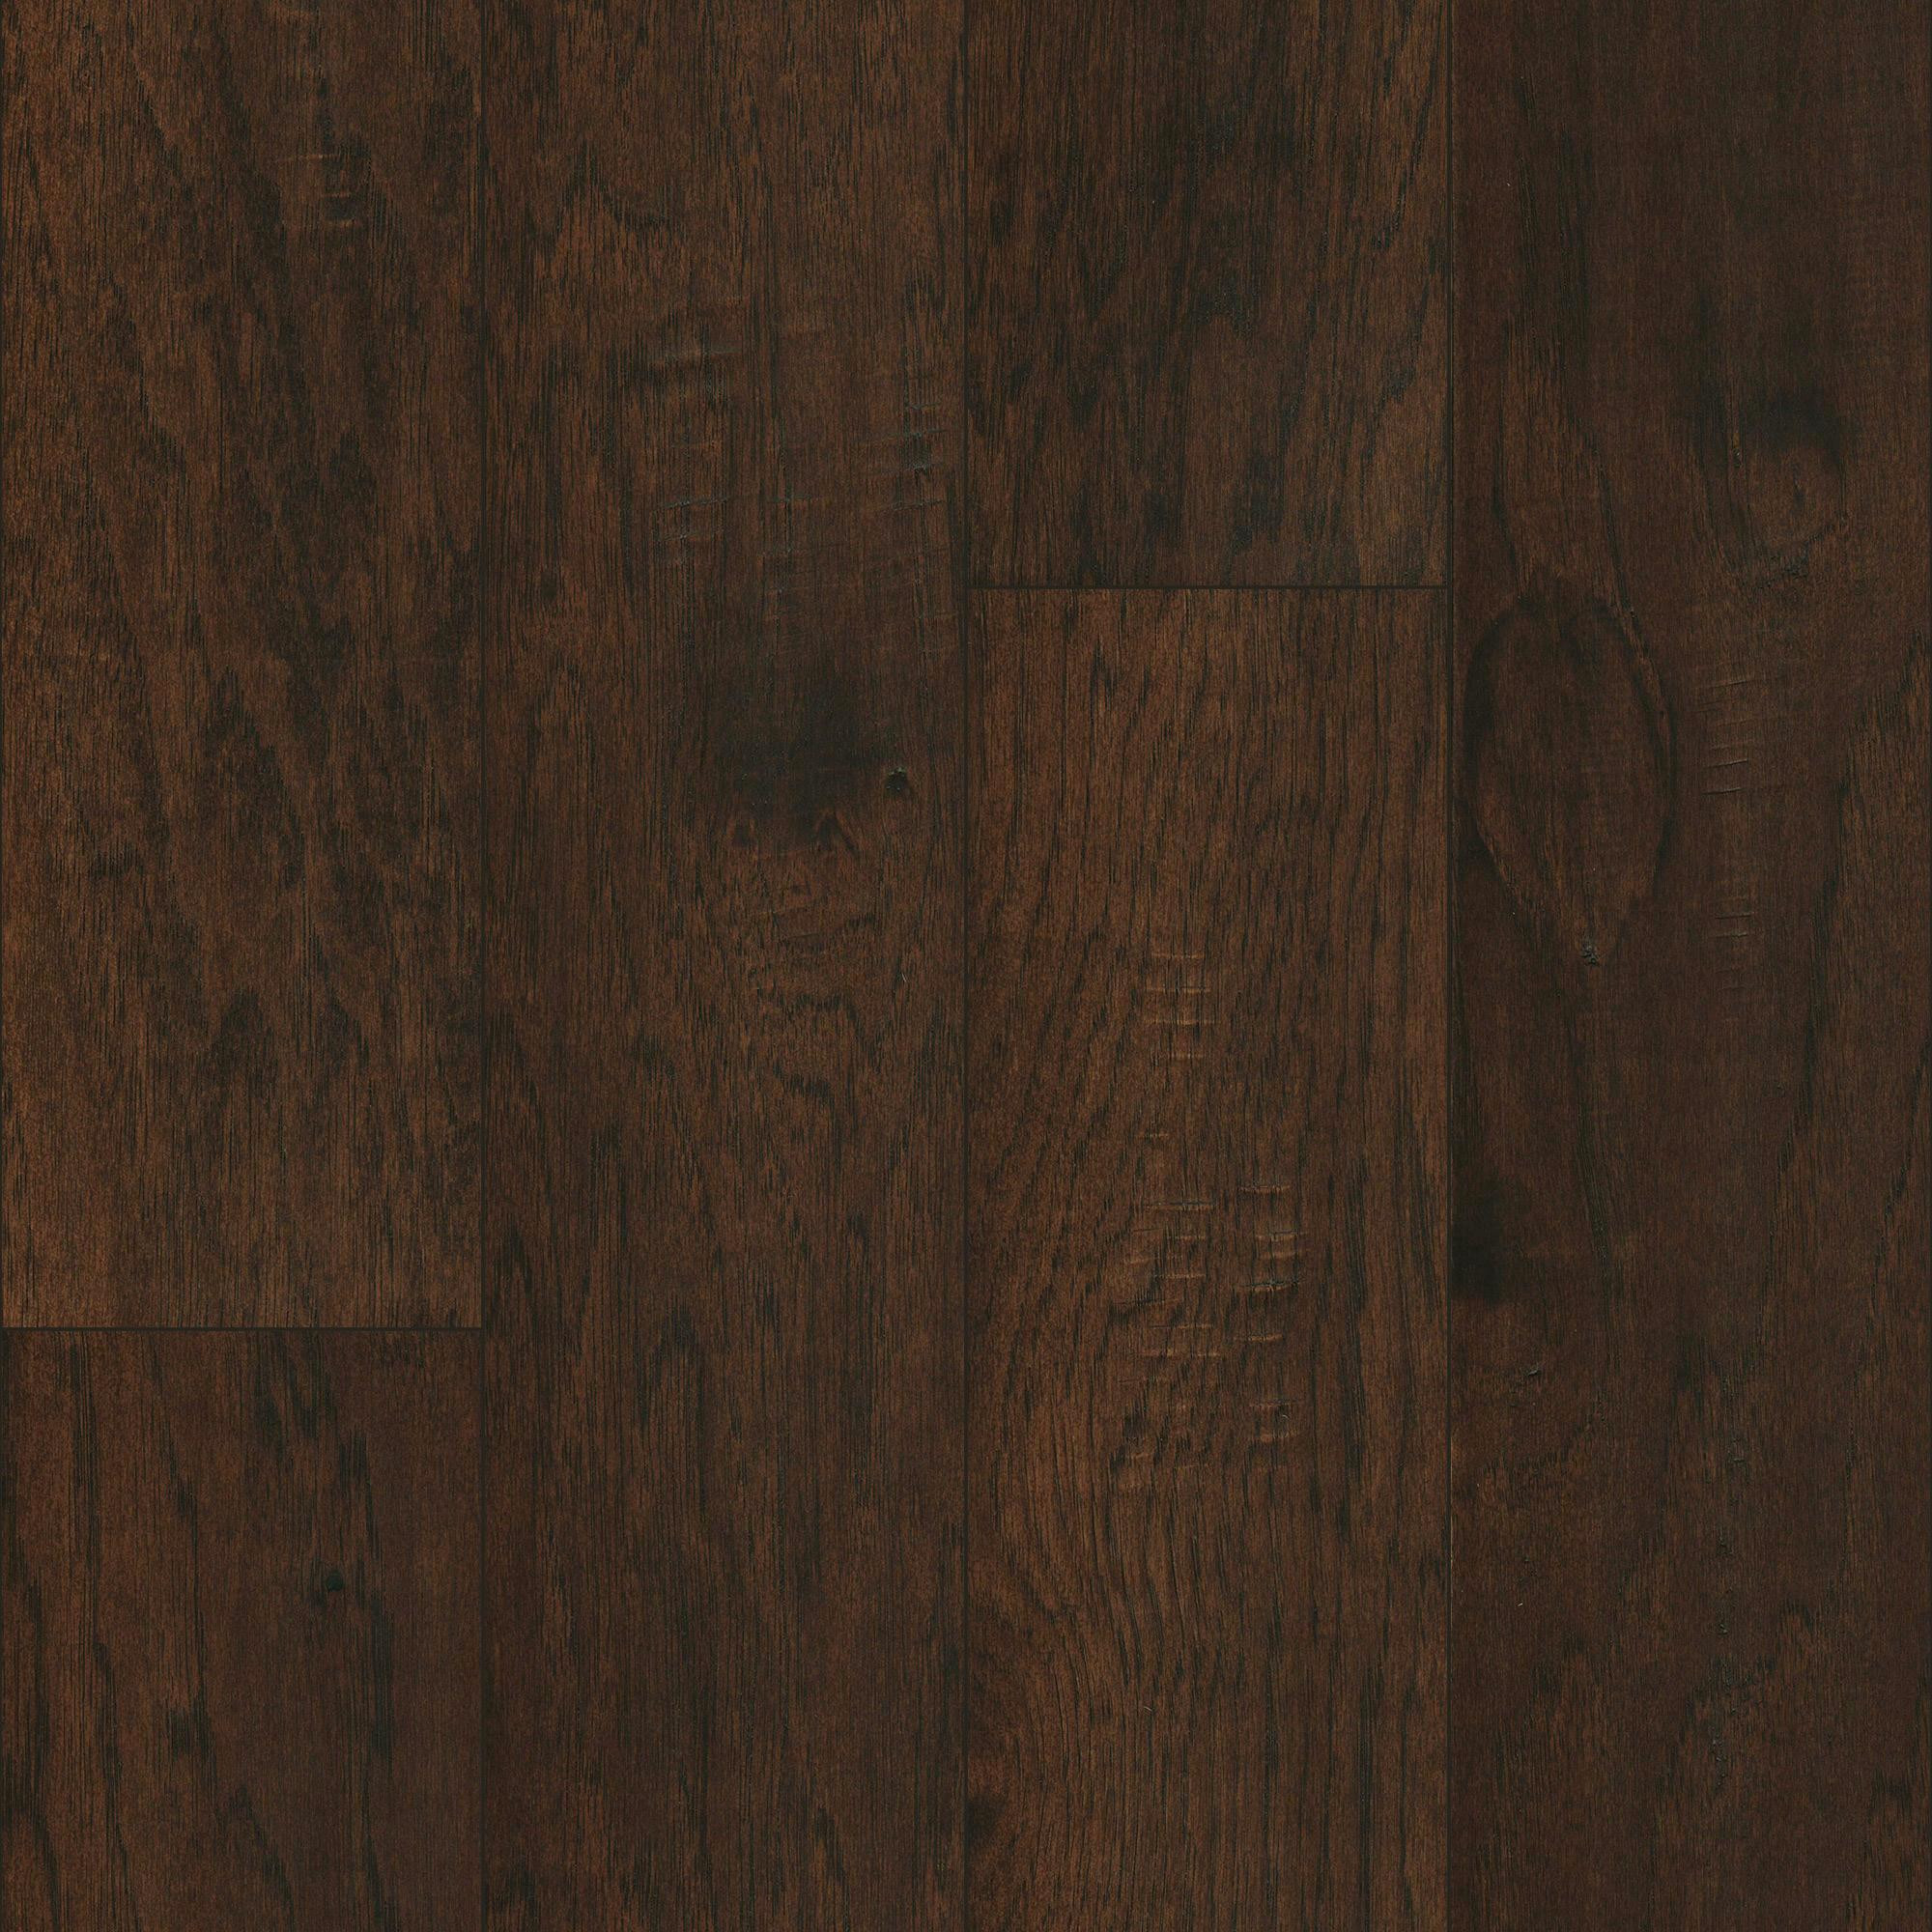 Bruce Hardwood Floor Cleaning Products Of Eldorado Hickory Saddle Bruce Style Hardwood Pertaining to Eldorado Hickory Saddle Bruce Style 6 5 Wide 1 2 Thick Hand Scraped Hardwood